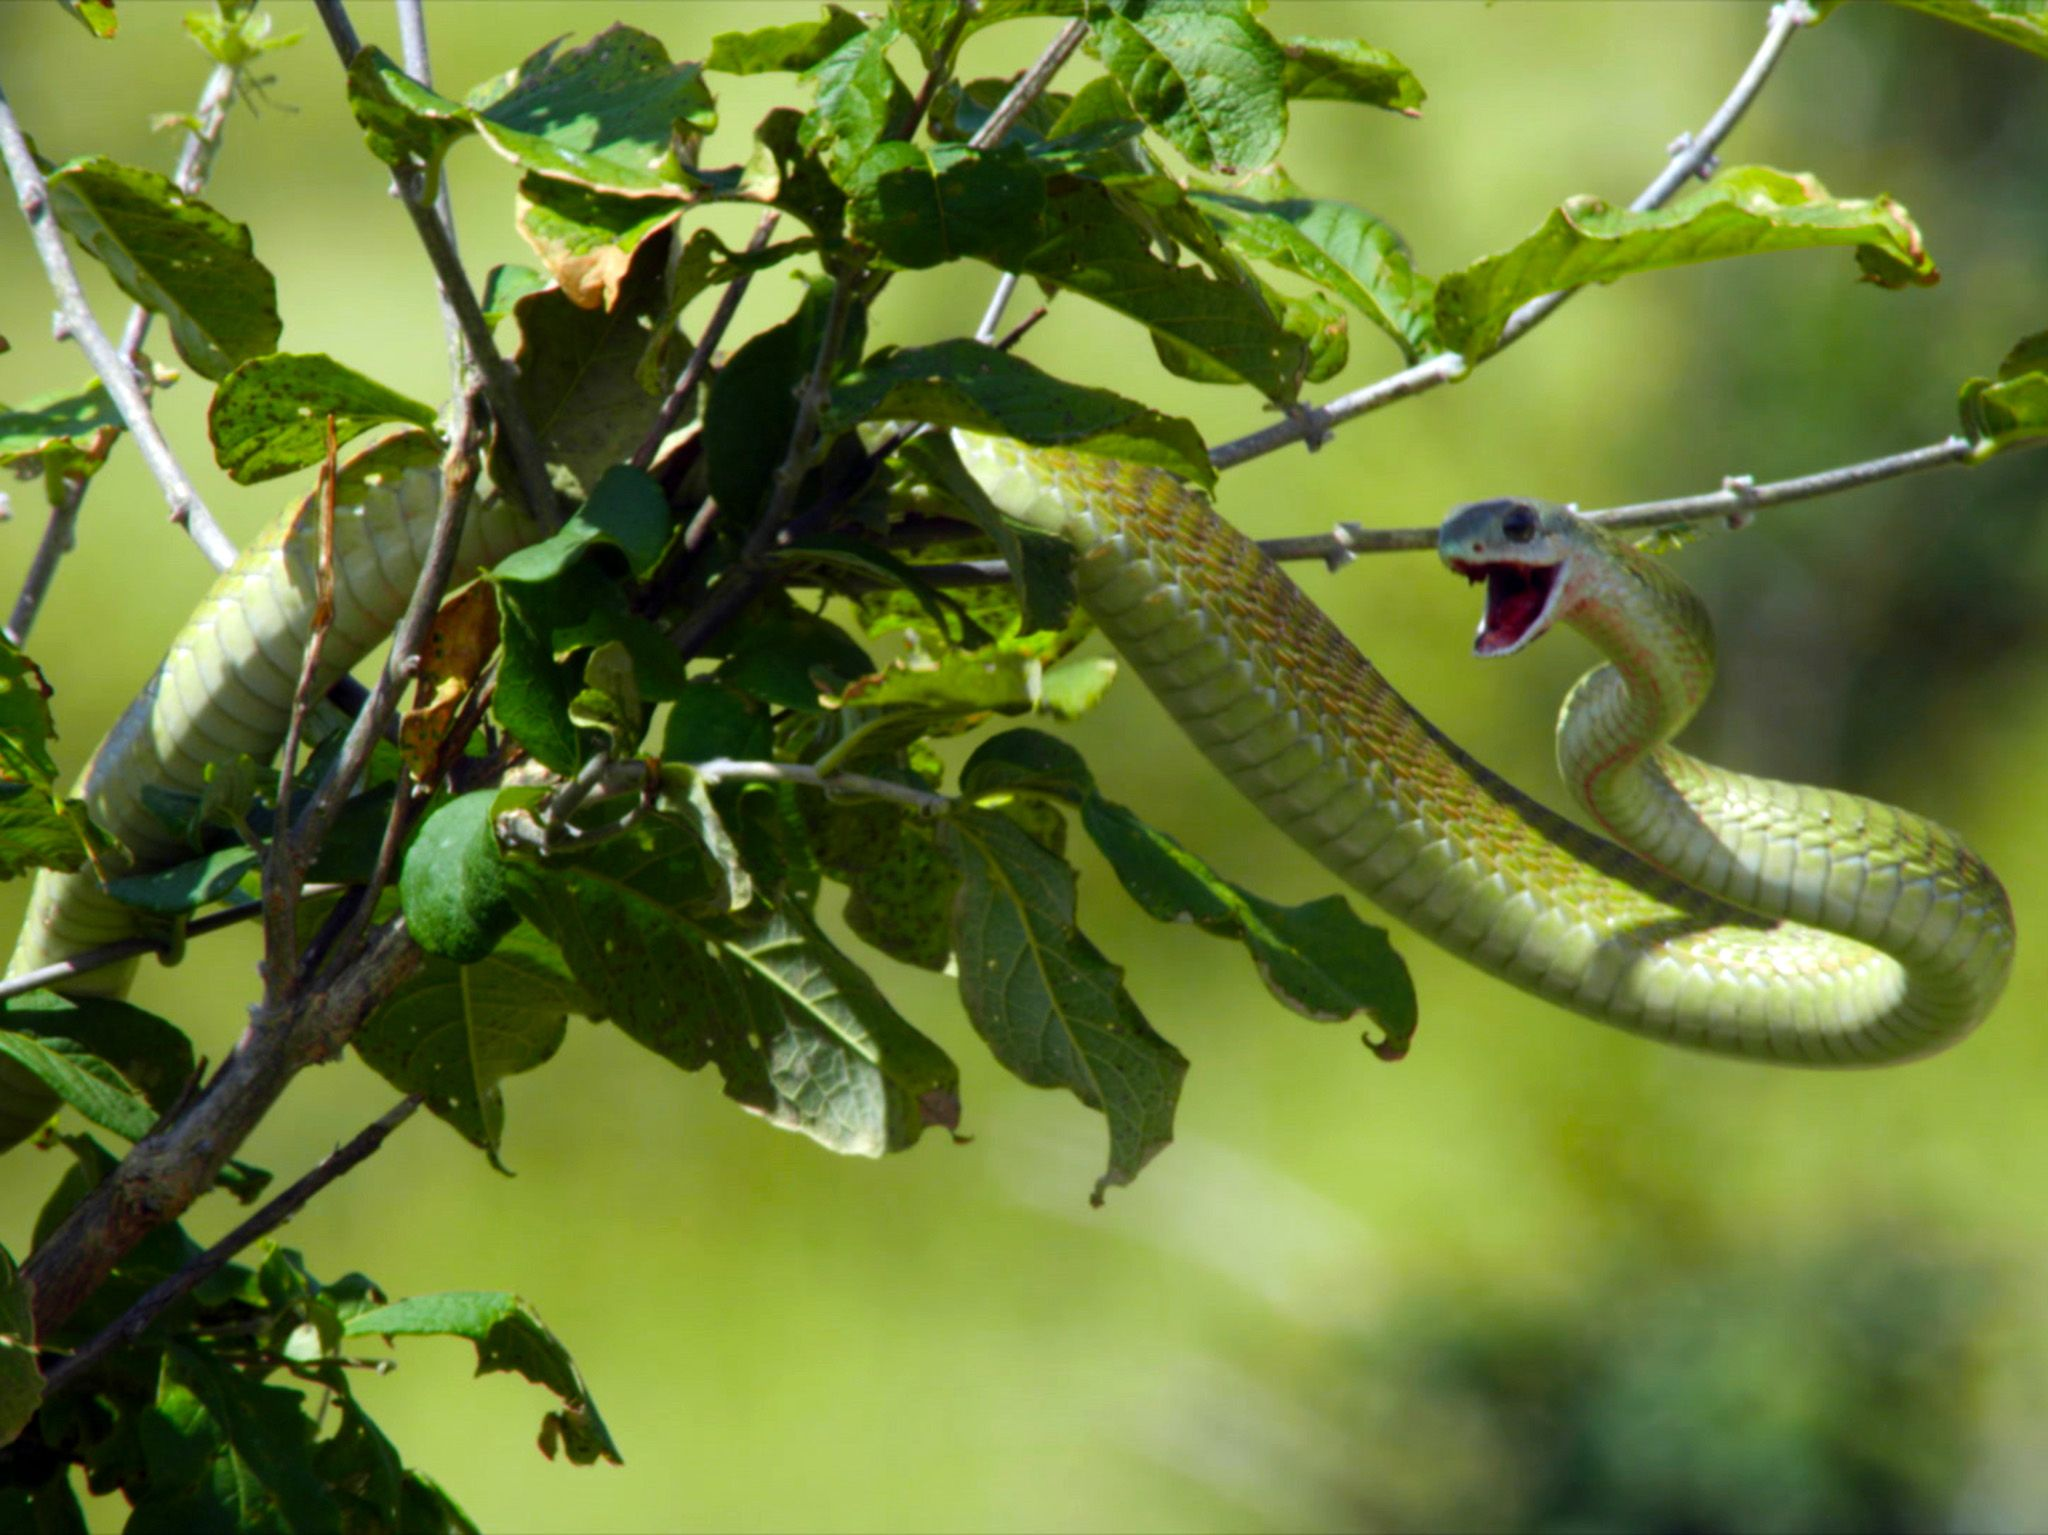 Botswana:  Little snake poised in tree.  This image is from Africa's Deadliest. [Photo of the day - January 2020]